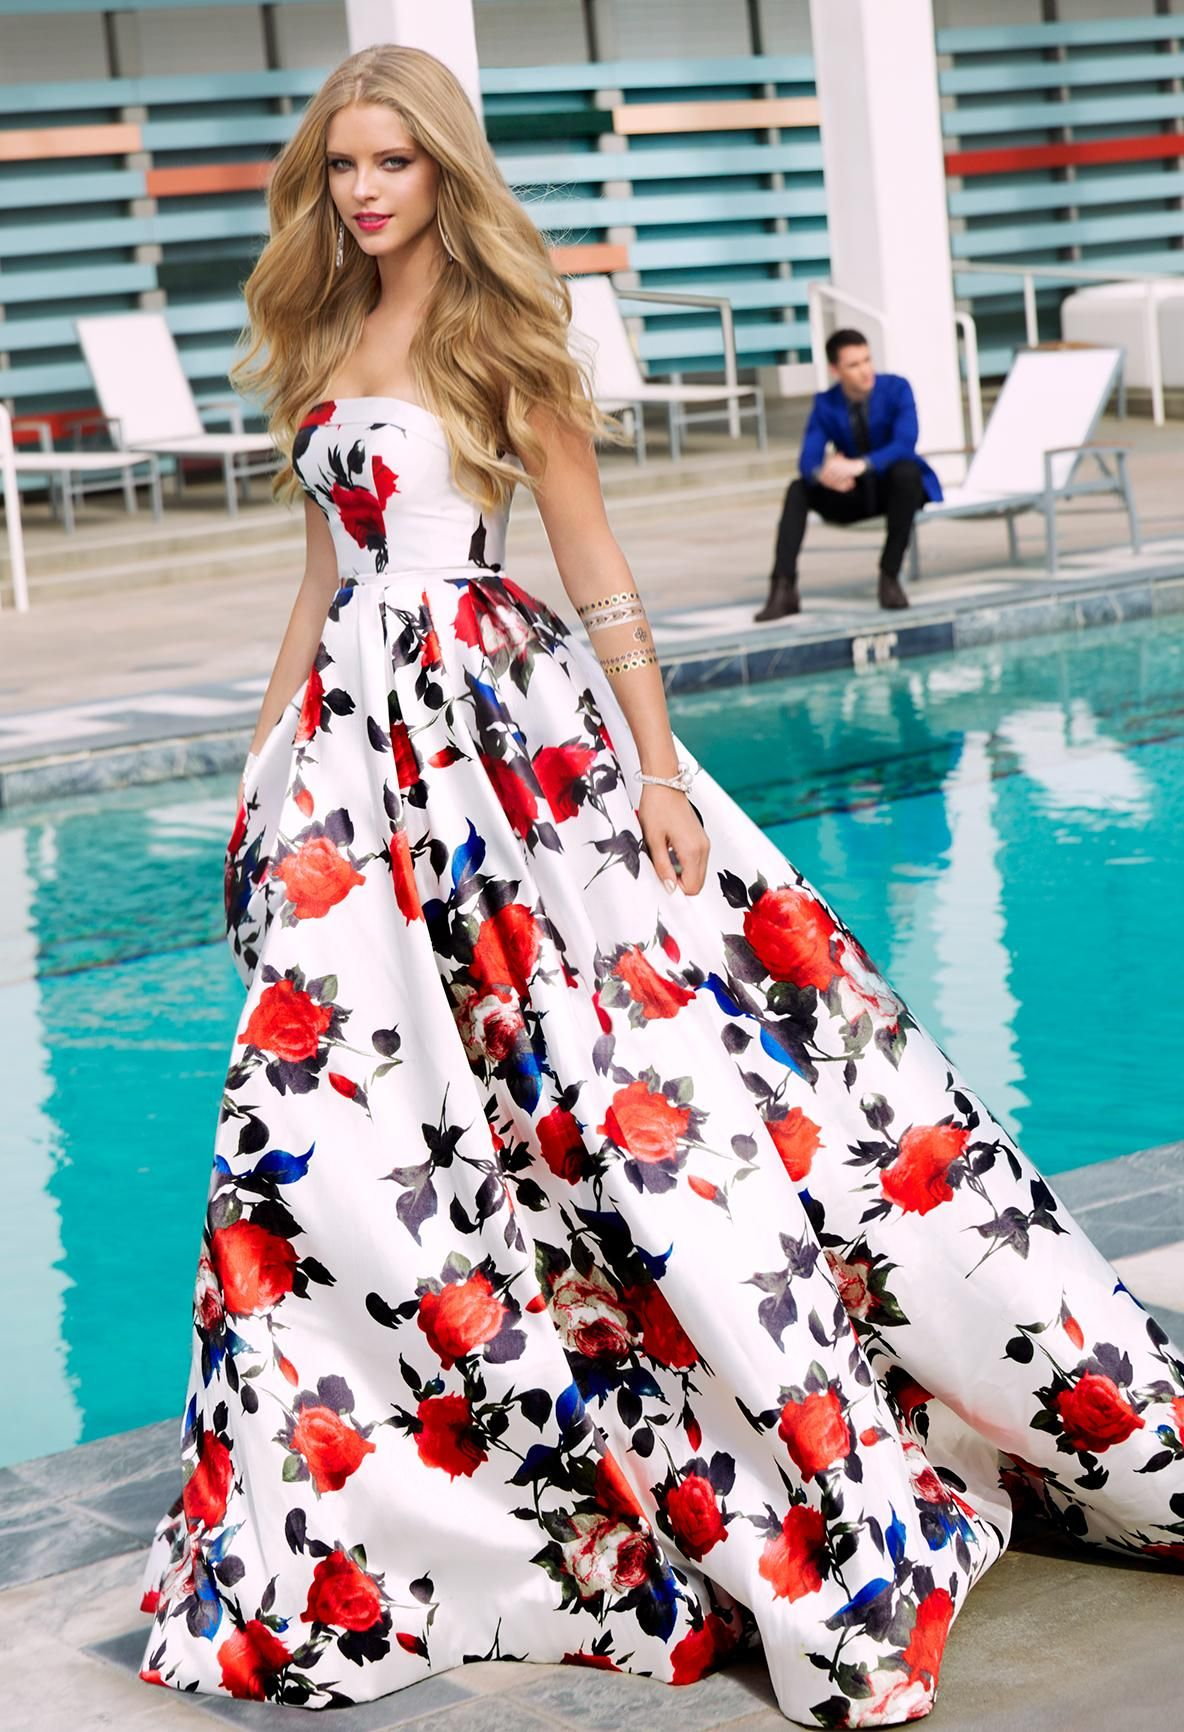 Rose Ballgown For Prom 2016 #camillelavie #CLVprom | Gowns ...